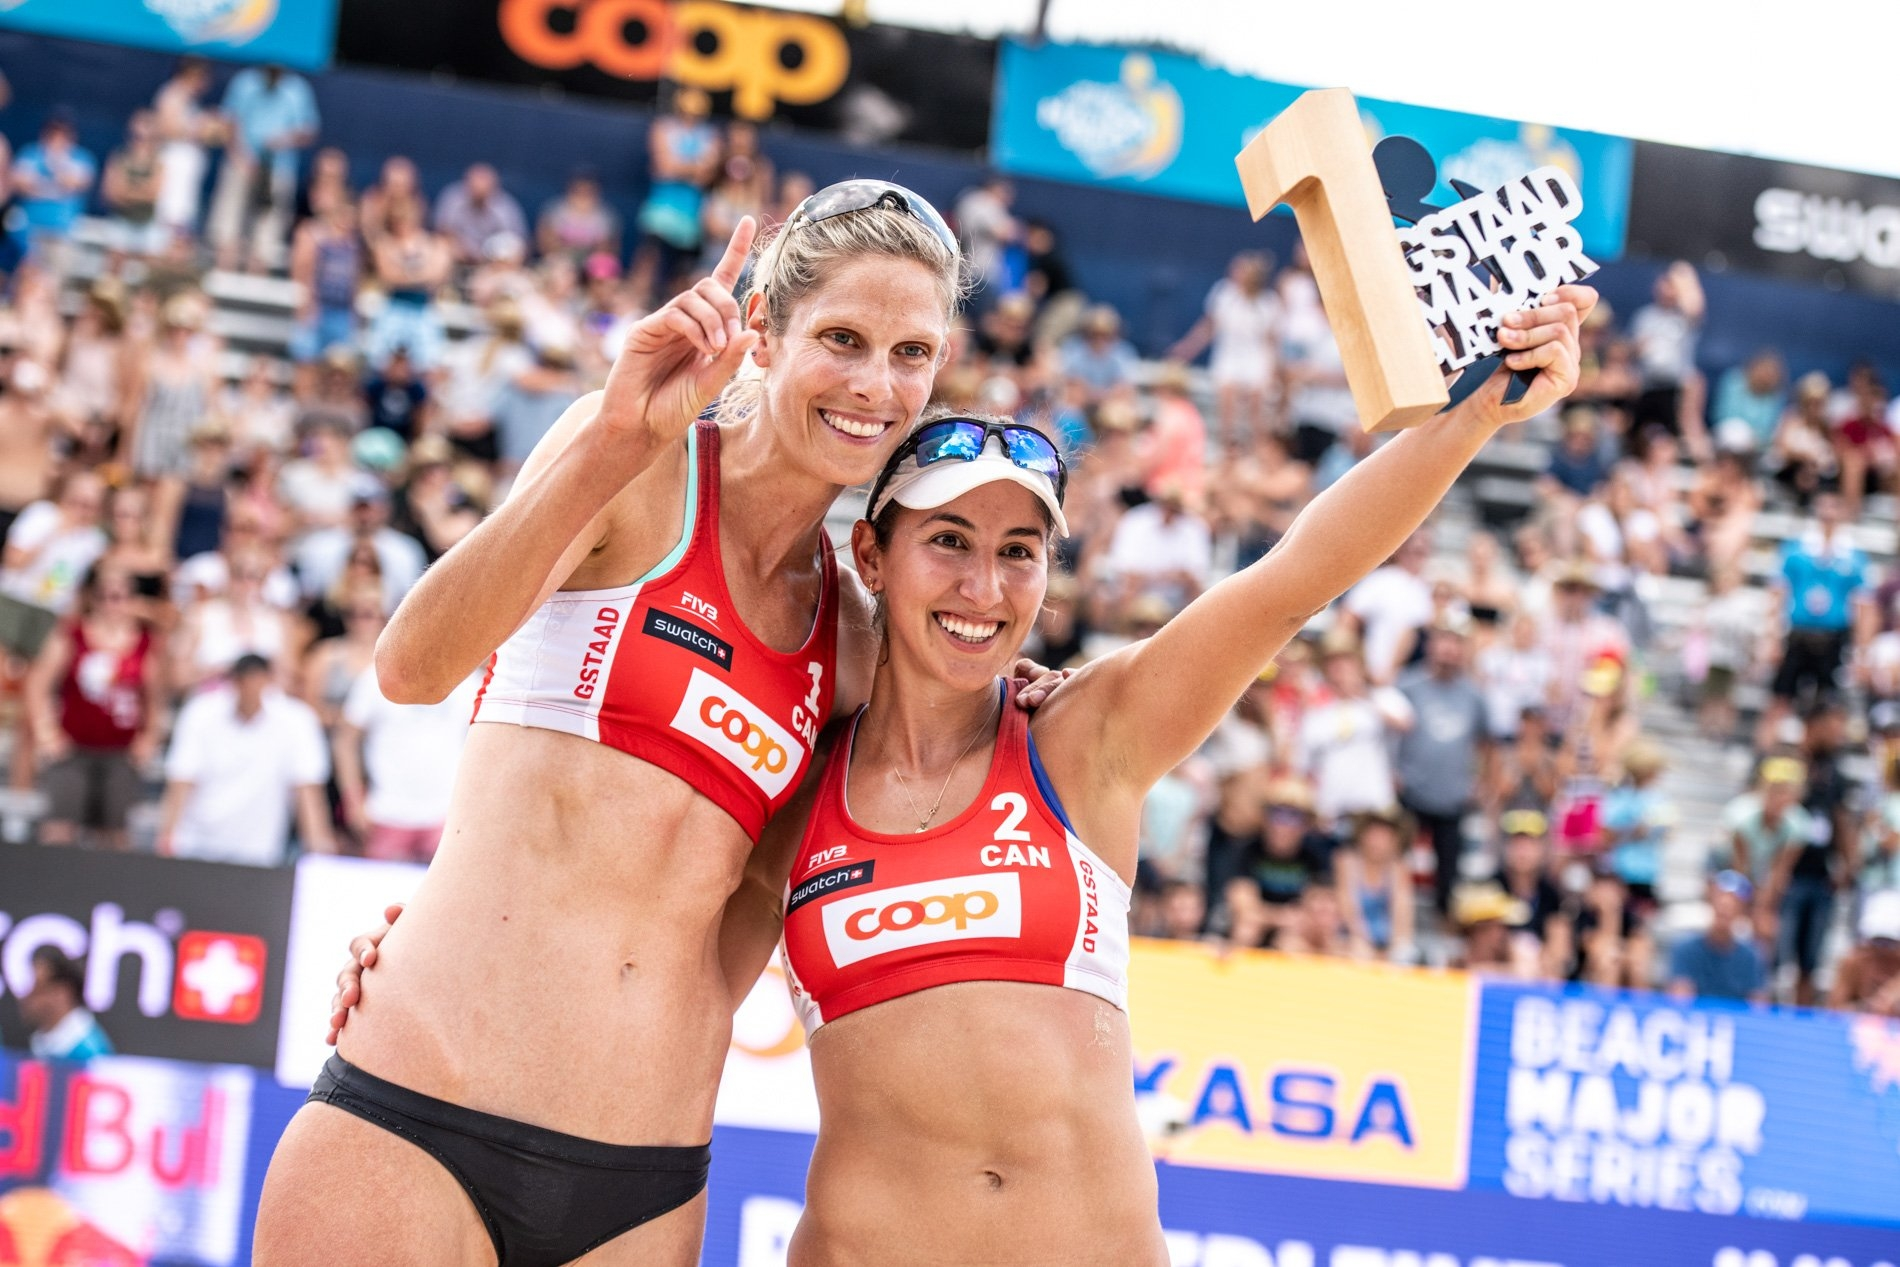 Gstaad Major winners Sarah Pavan and Melissa Humana-Paredes will compete at Huntington Beach this weekend